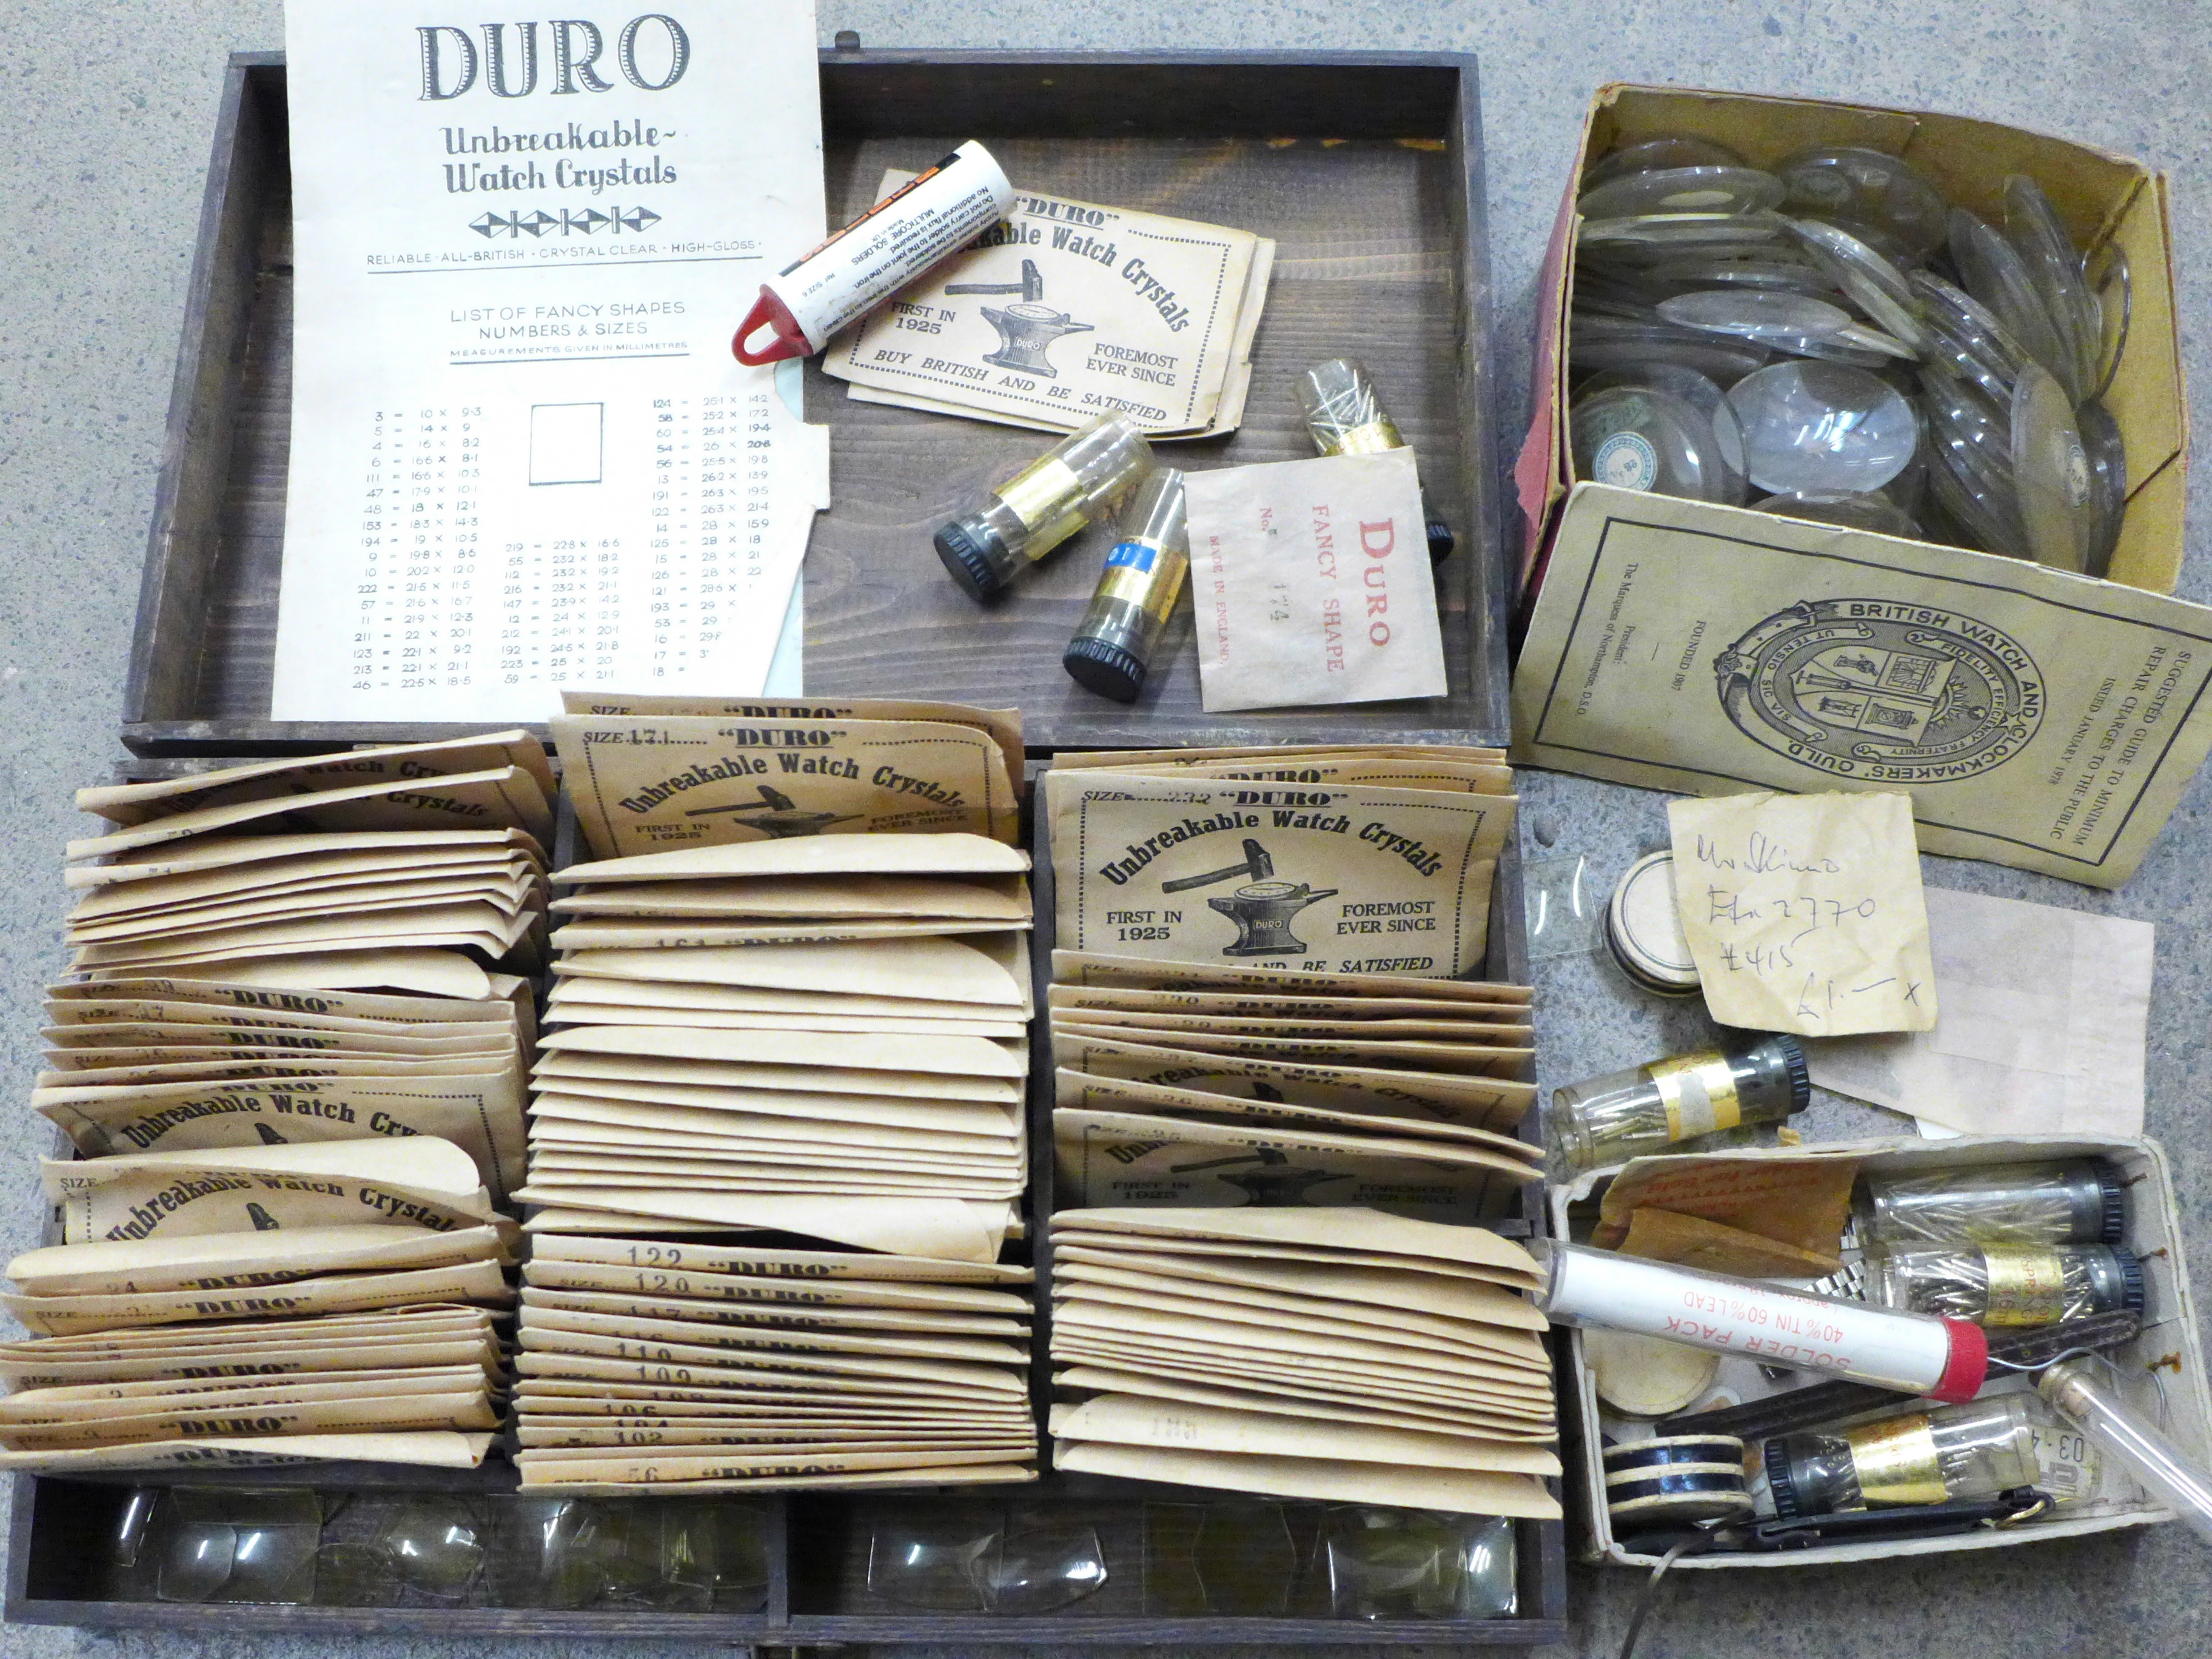 A case of Duro unbreakable watch crystals, fancy and unusual shapes, with order booklet (saleman's